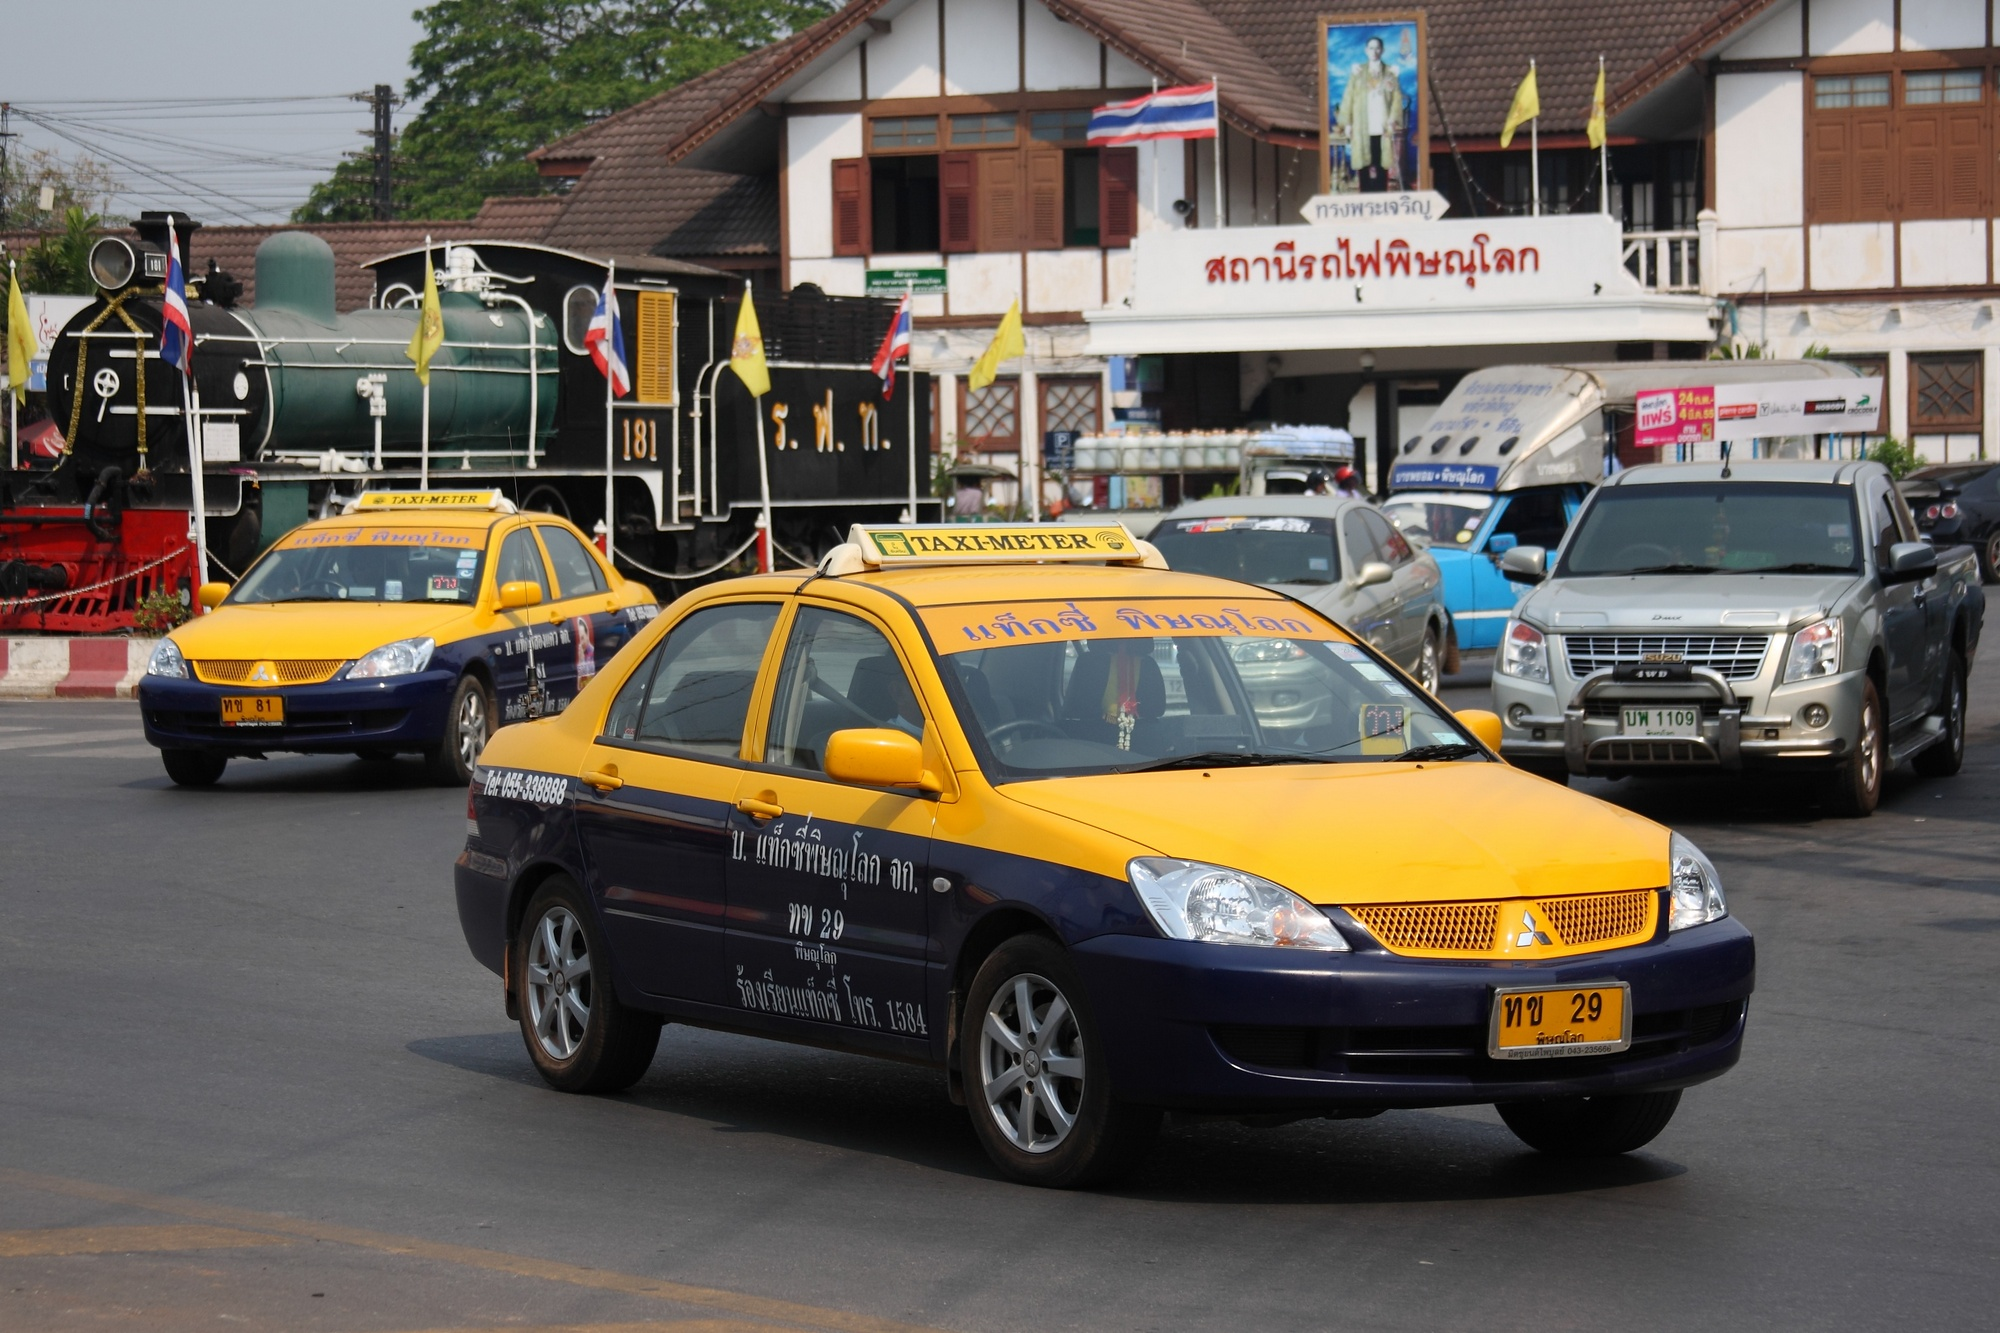 finest selection 26e4d b94a8 File:Taxi-meter in Phitsanulok 02.jpg - Wikimedia Commons